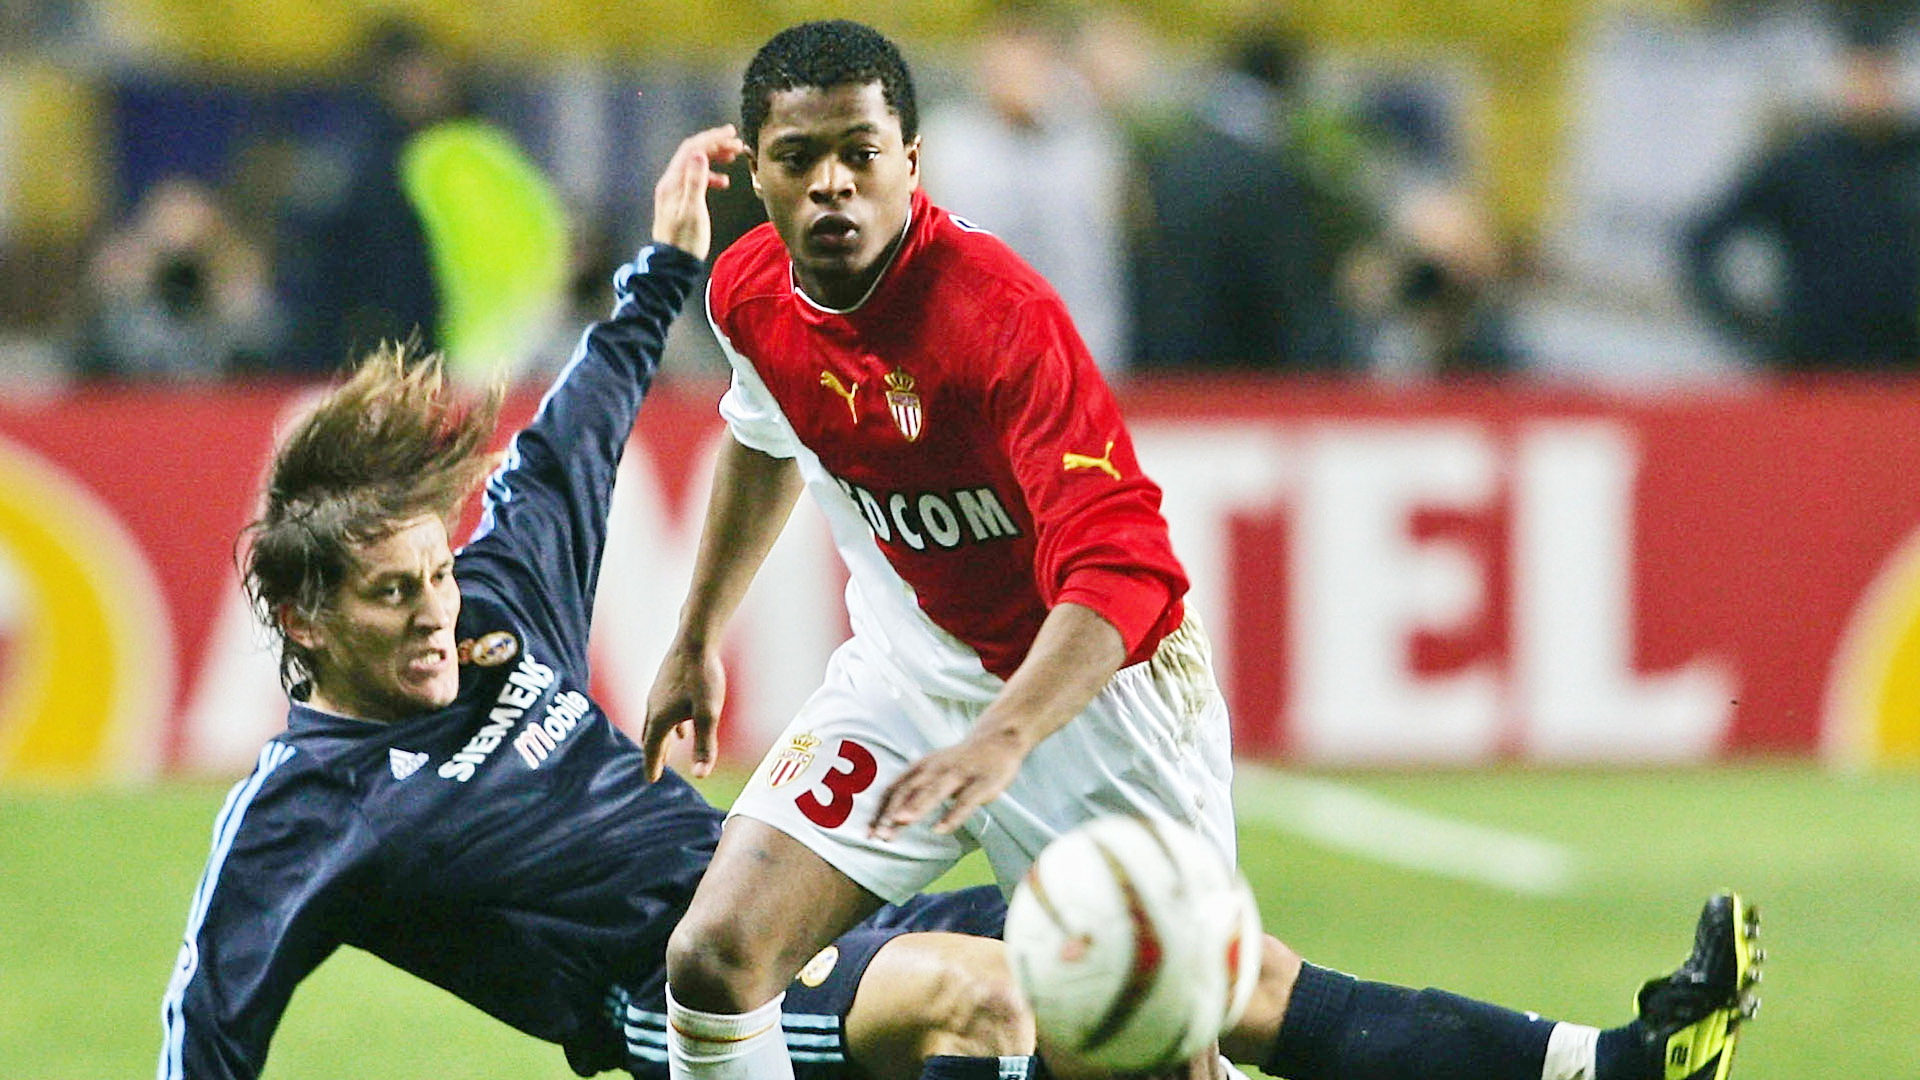 From Ligue 1 to superstardom Patrice Evra